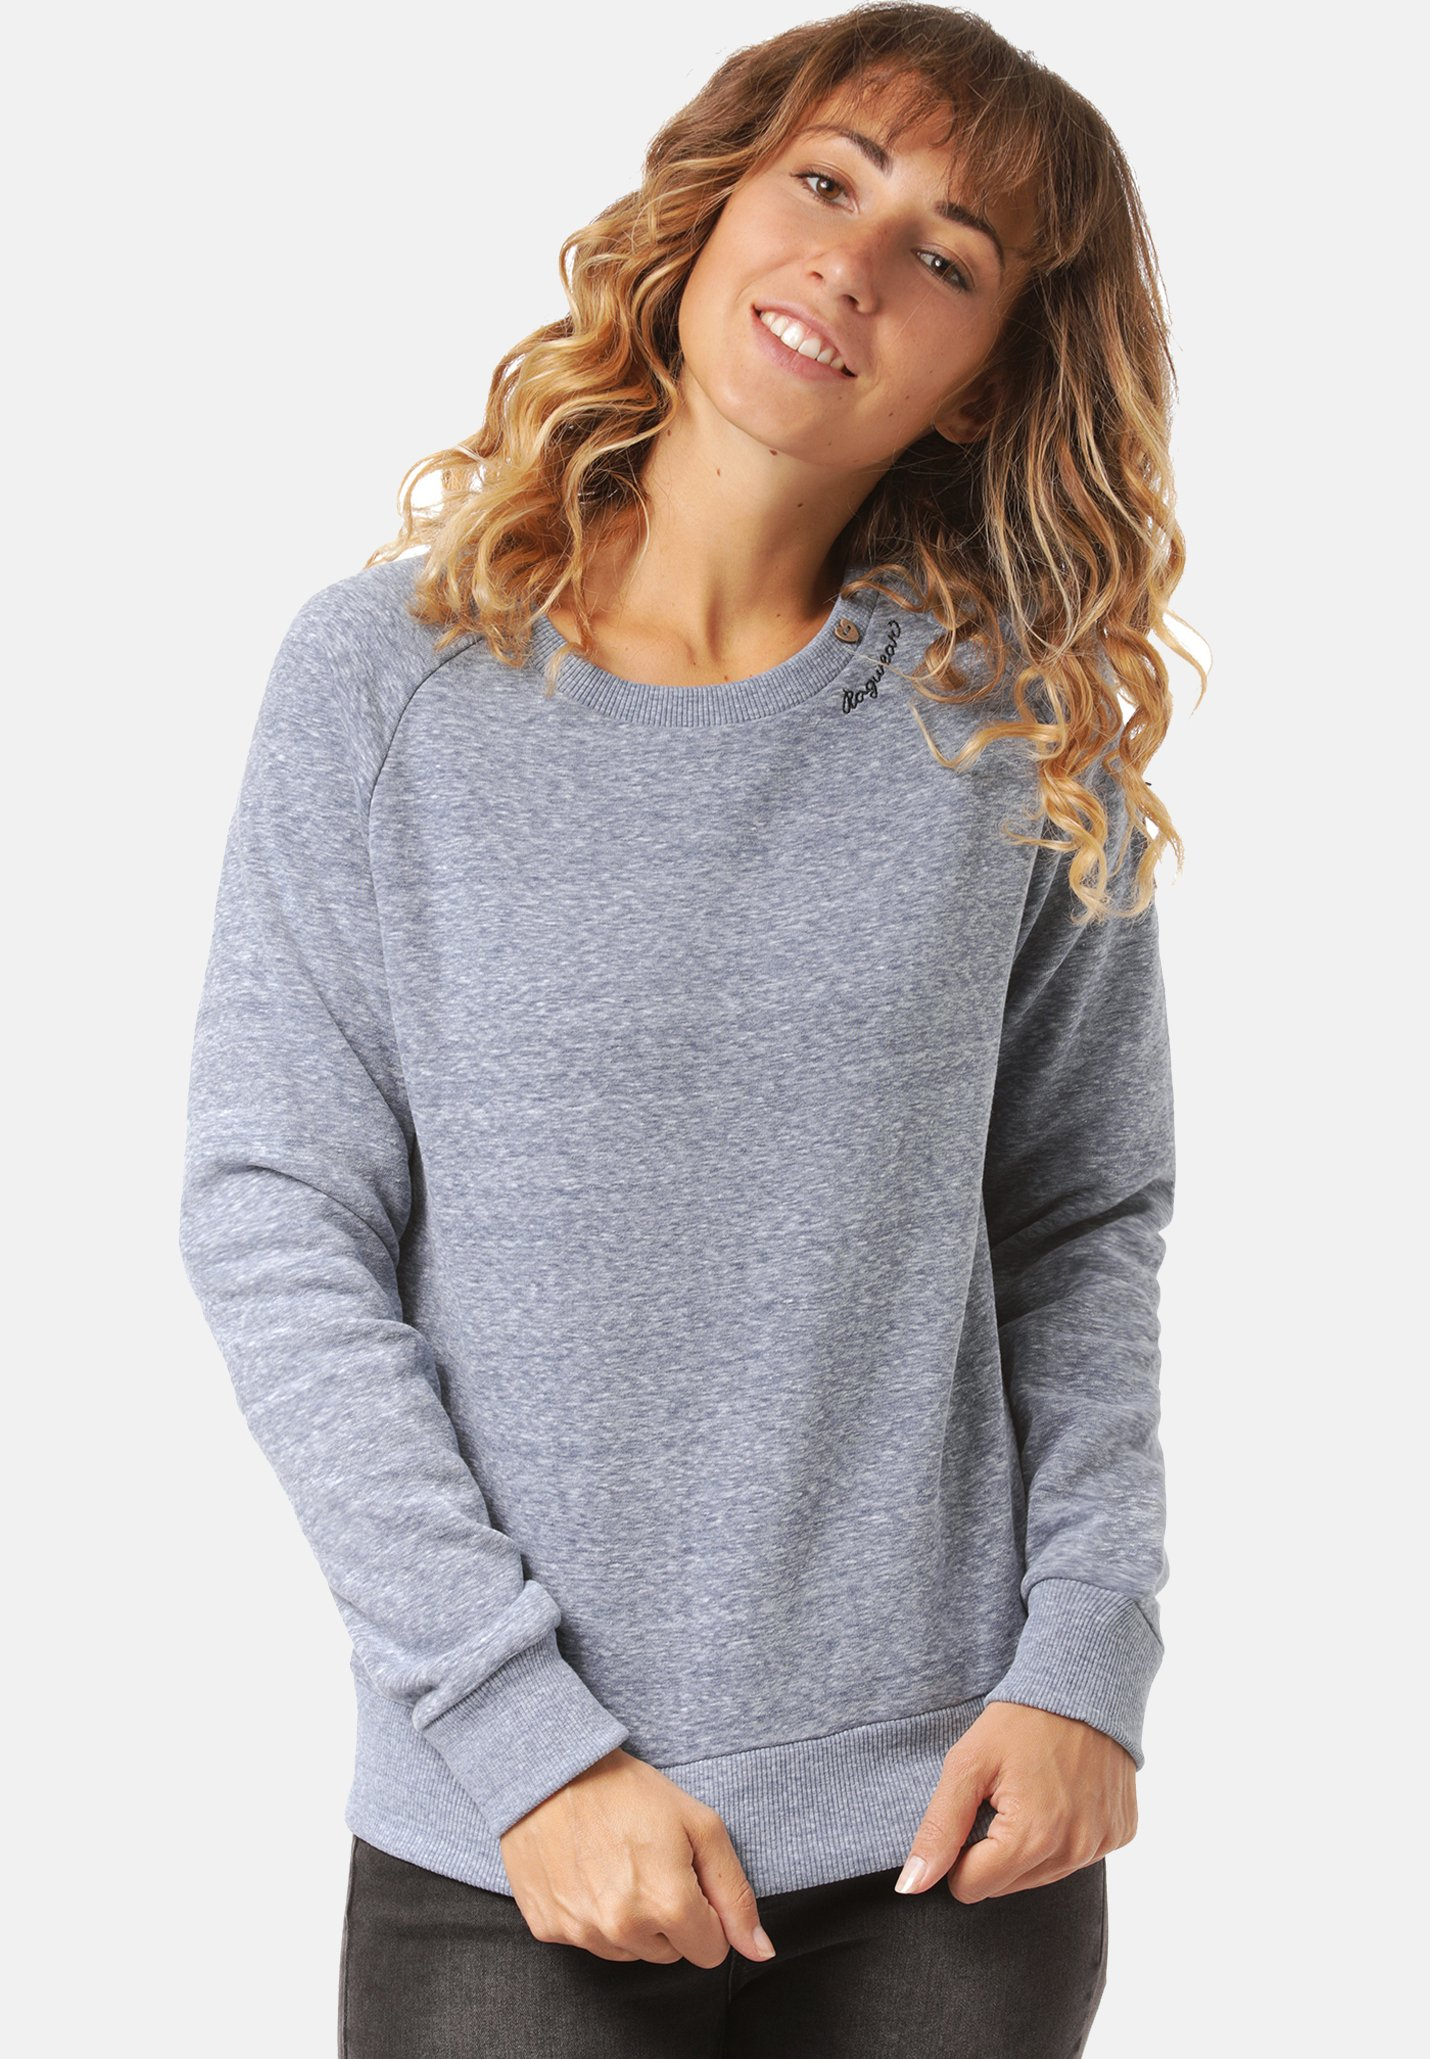 Ragwear Sweater - blue - Dames jas Aanbod